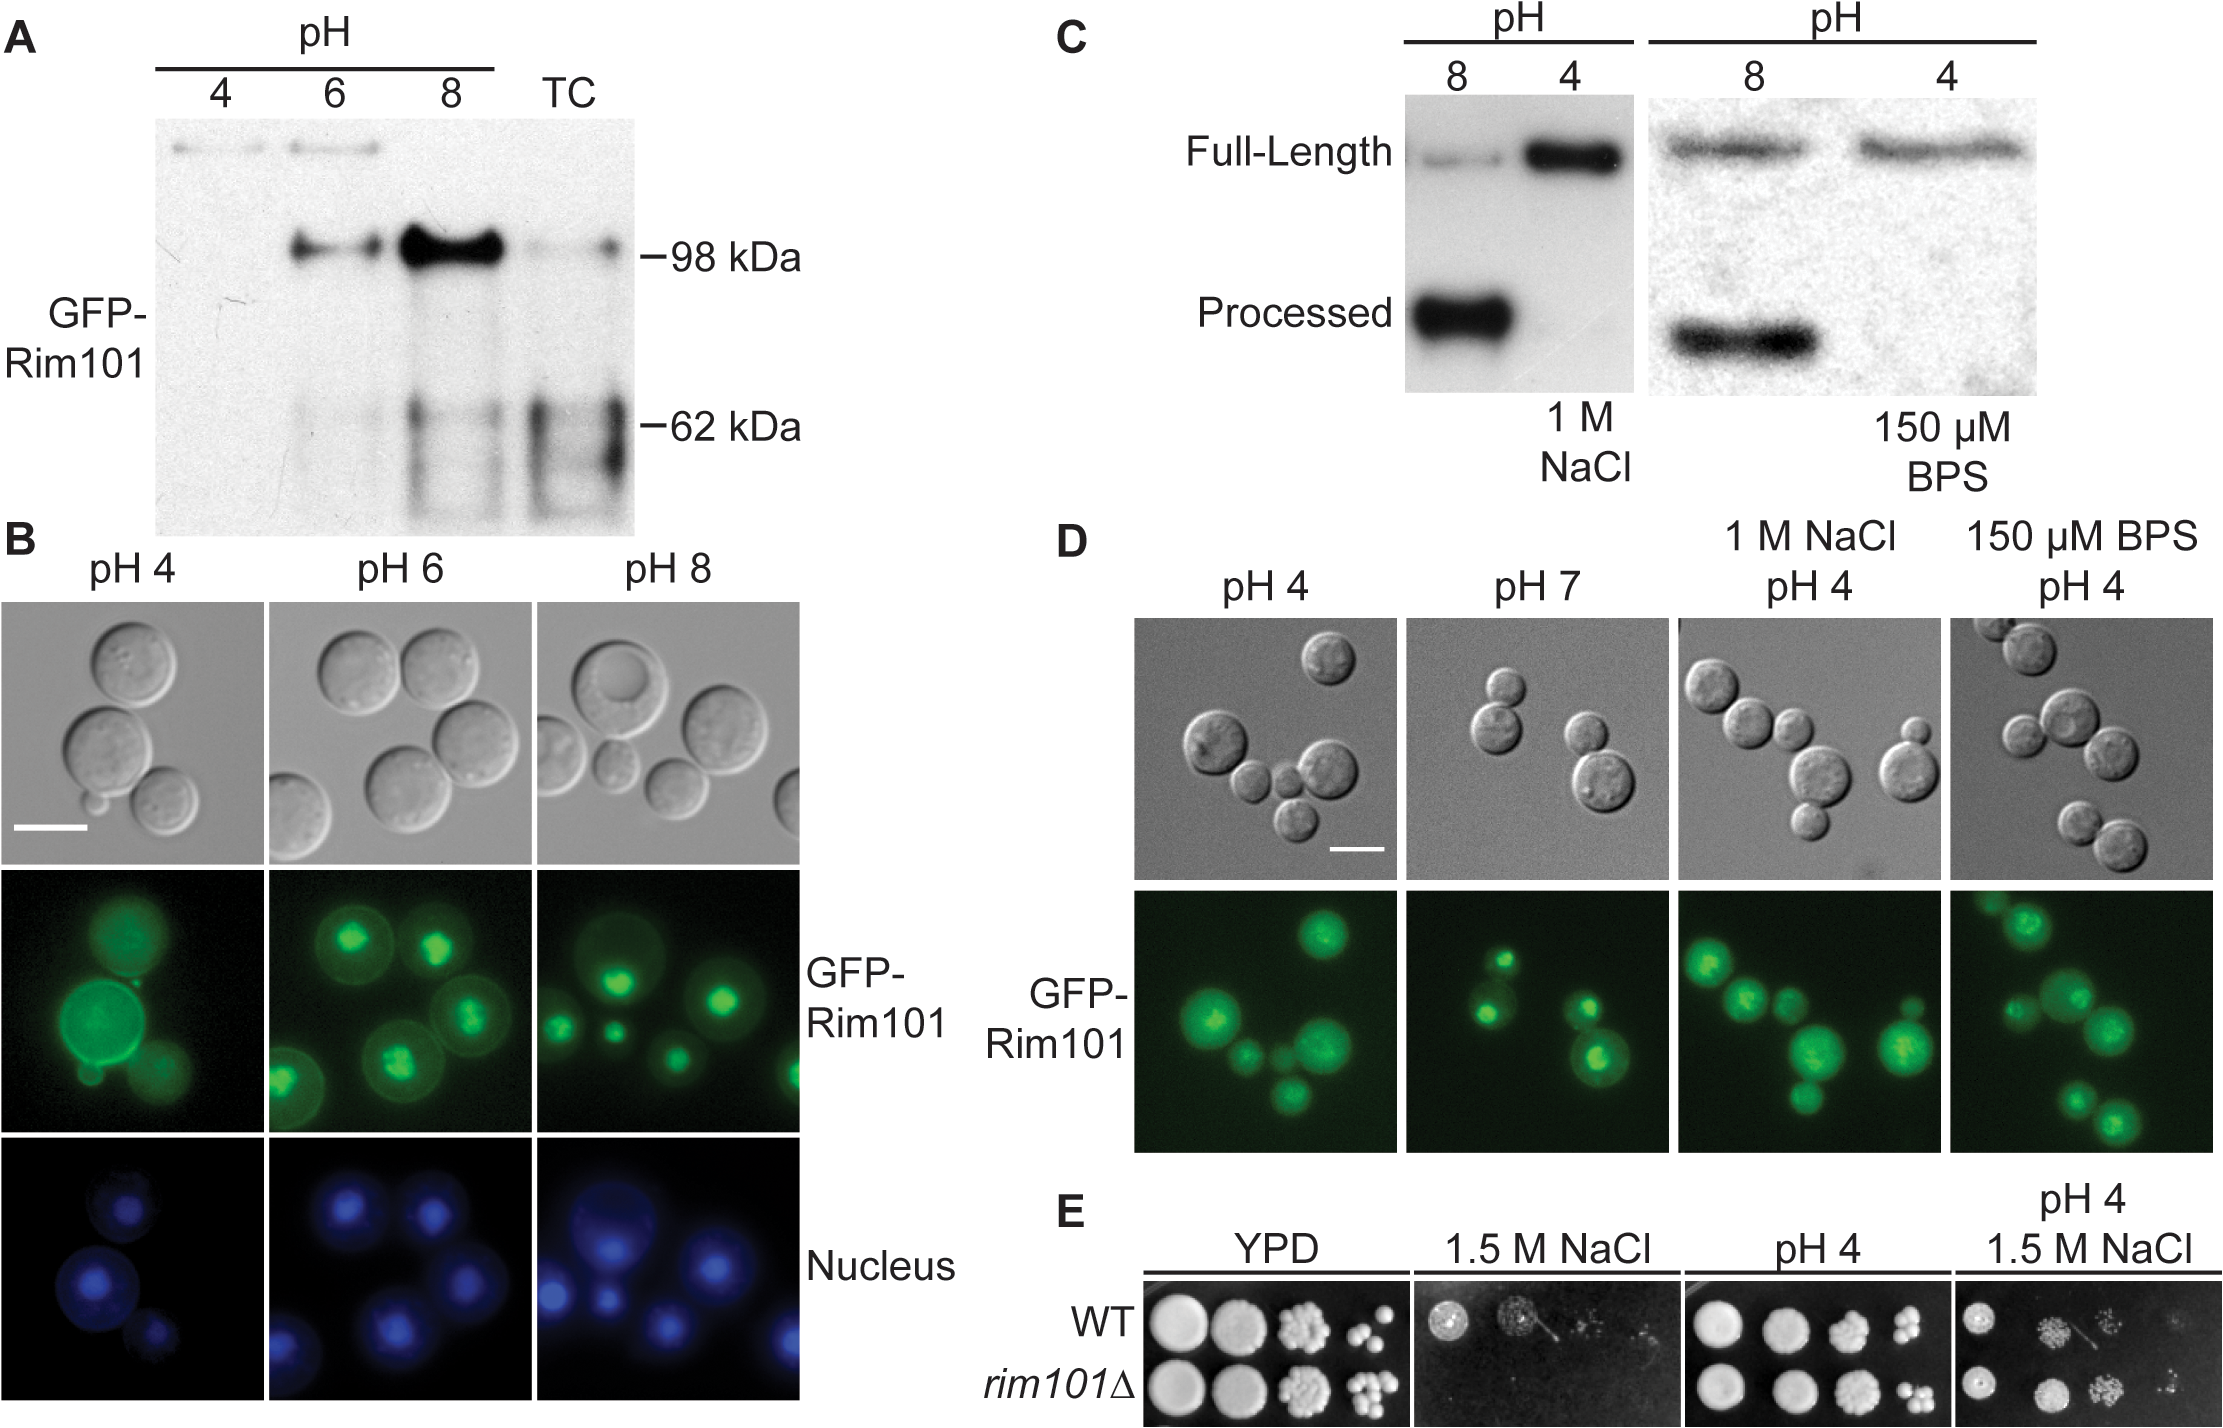 Rim101 proteolysis and nuclear localization are dependent on pH.